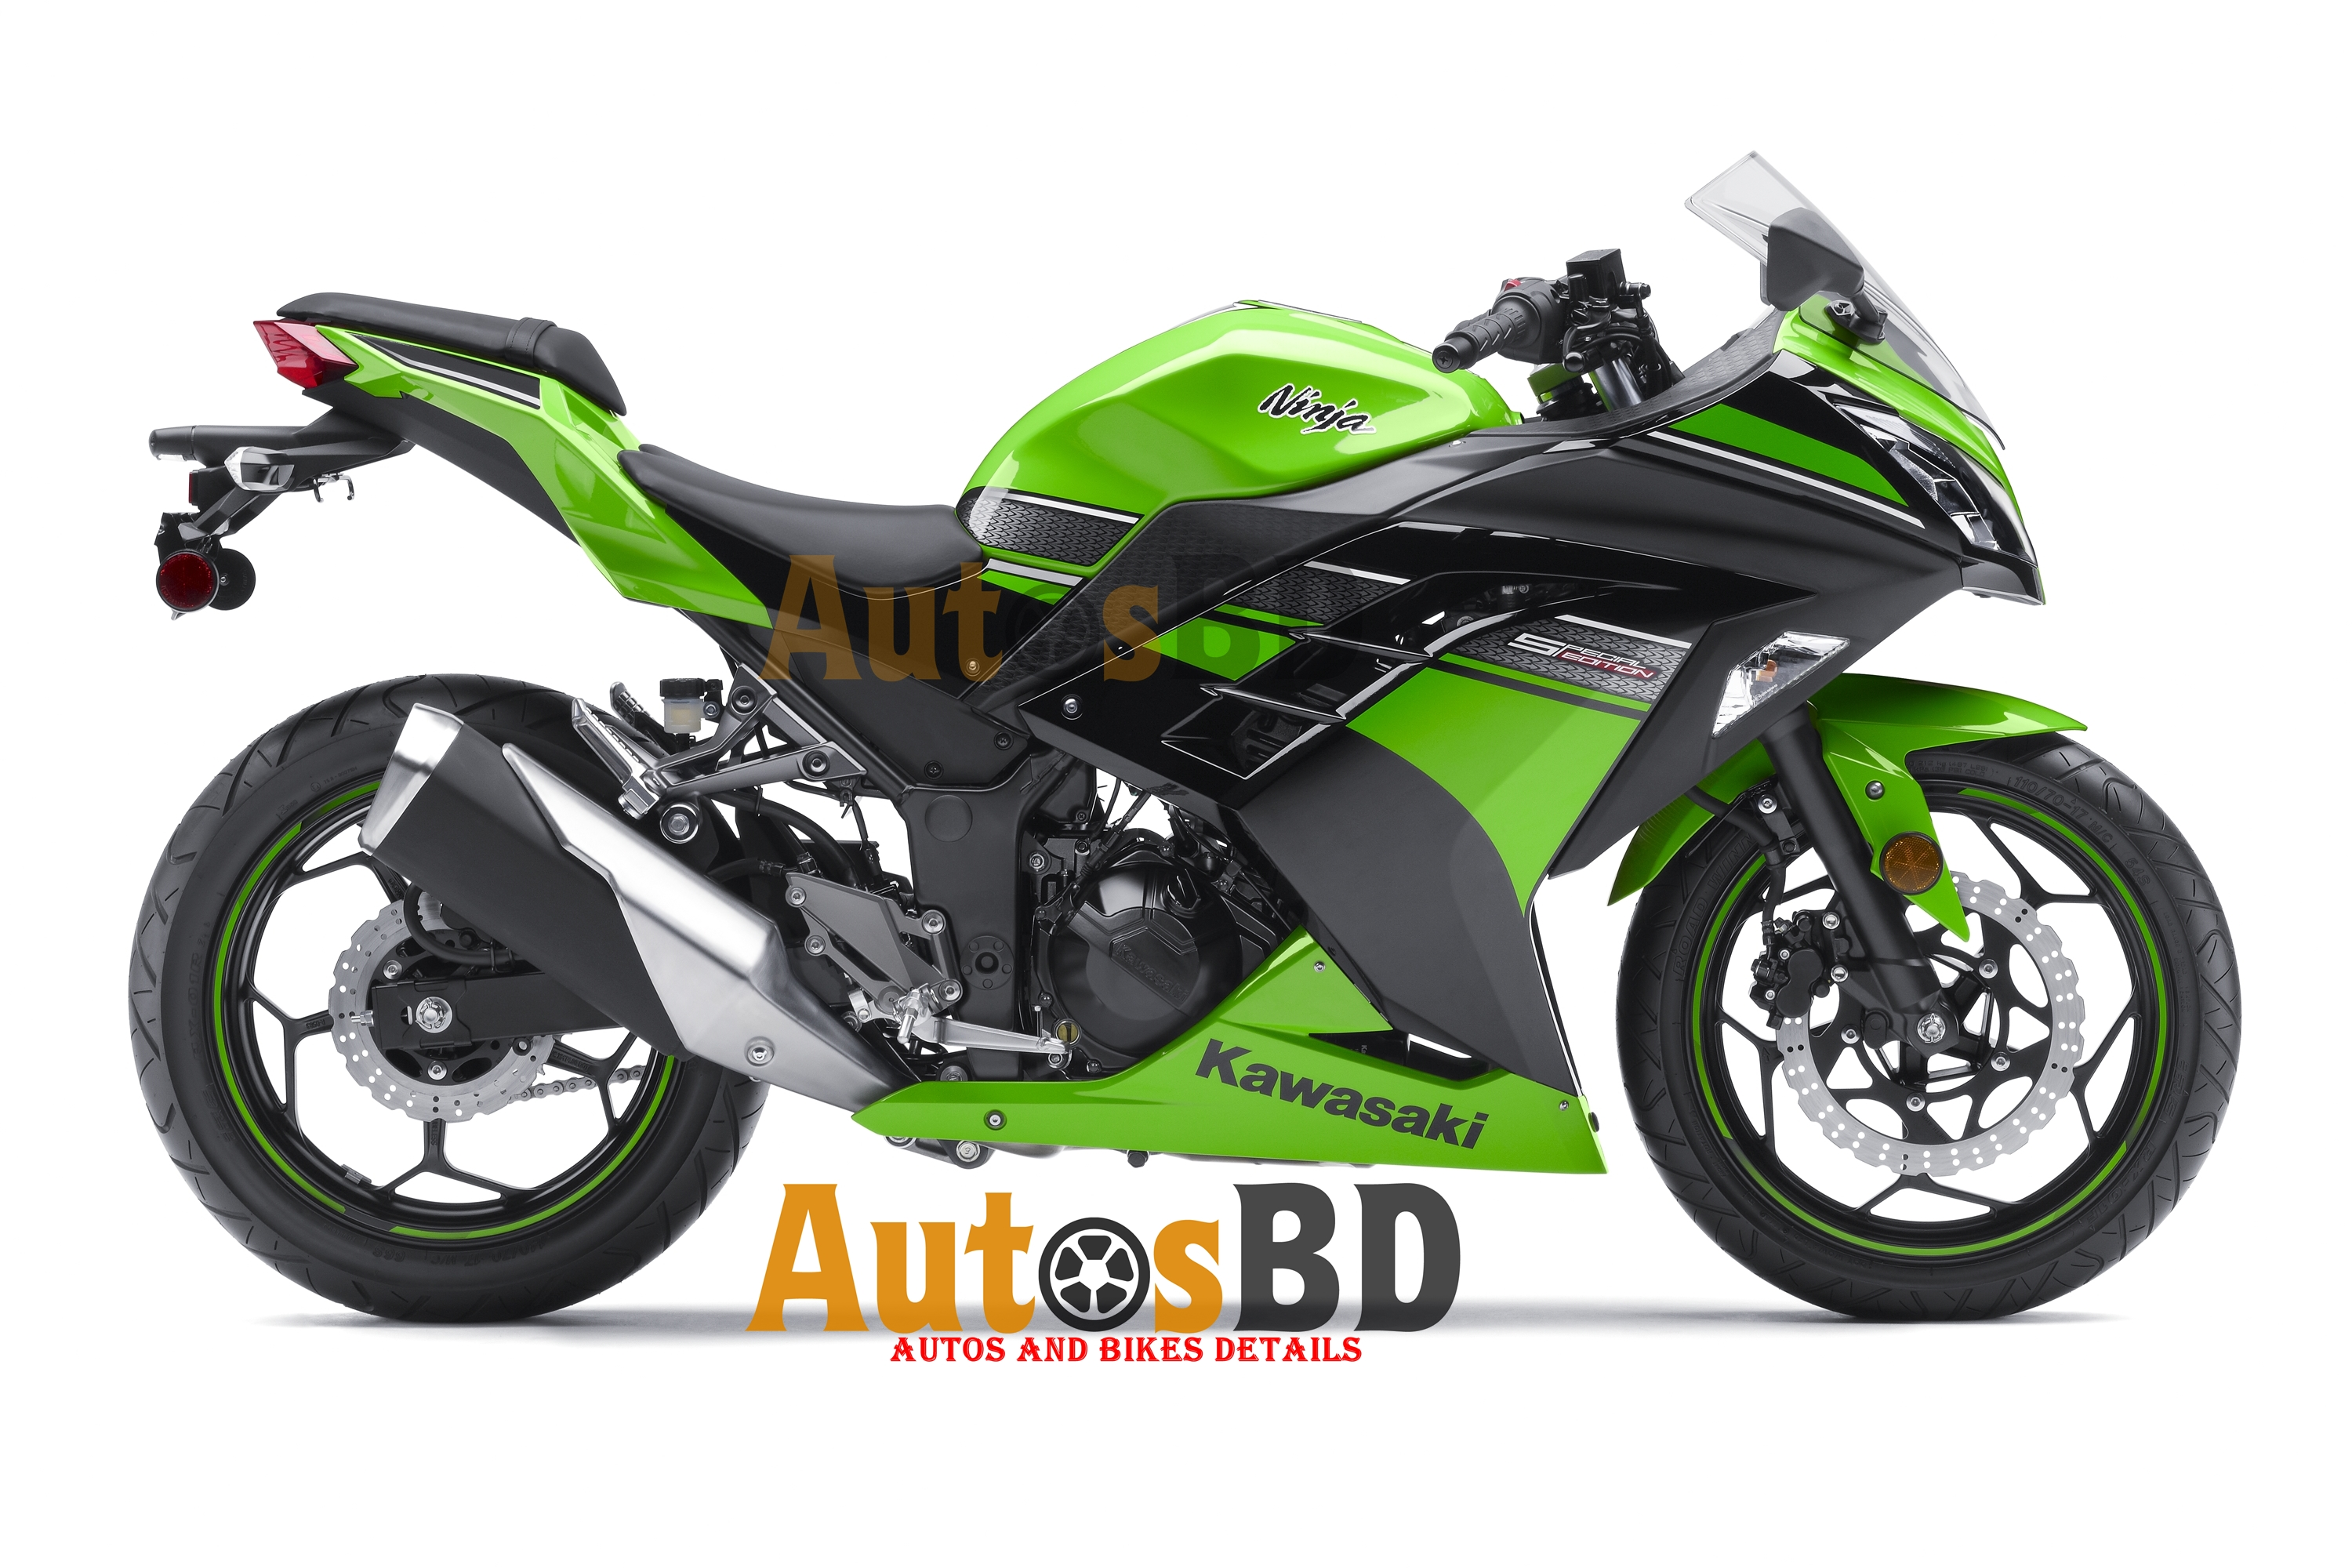 Kawasaki Ninja 300 Motorcycle Specification